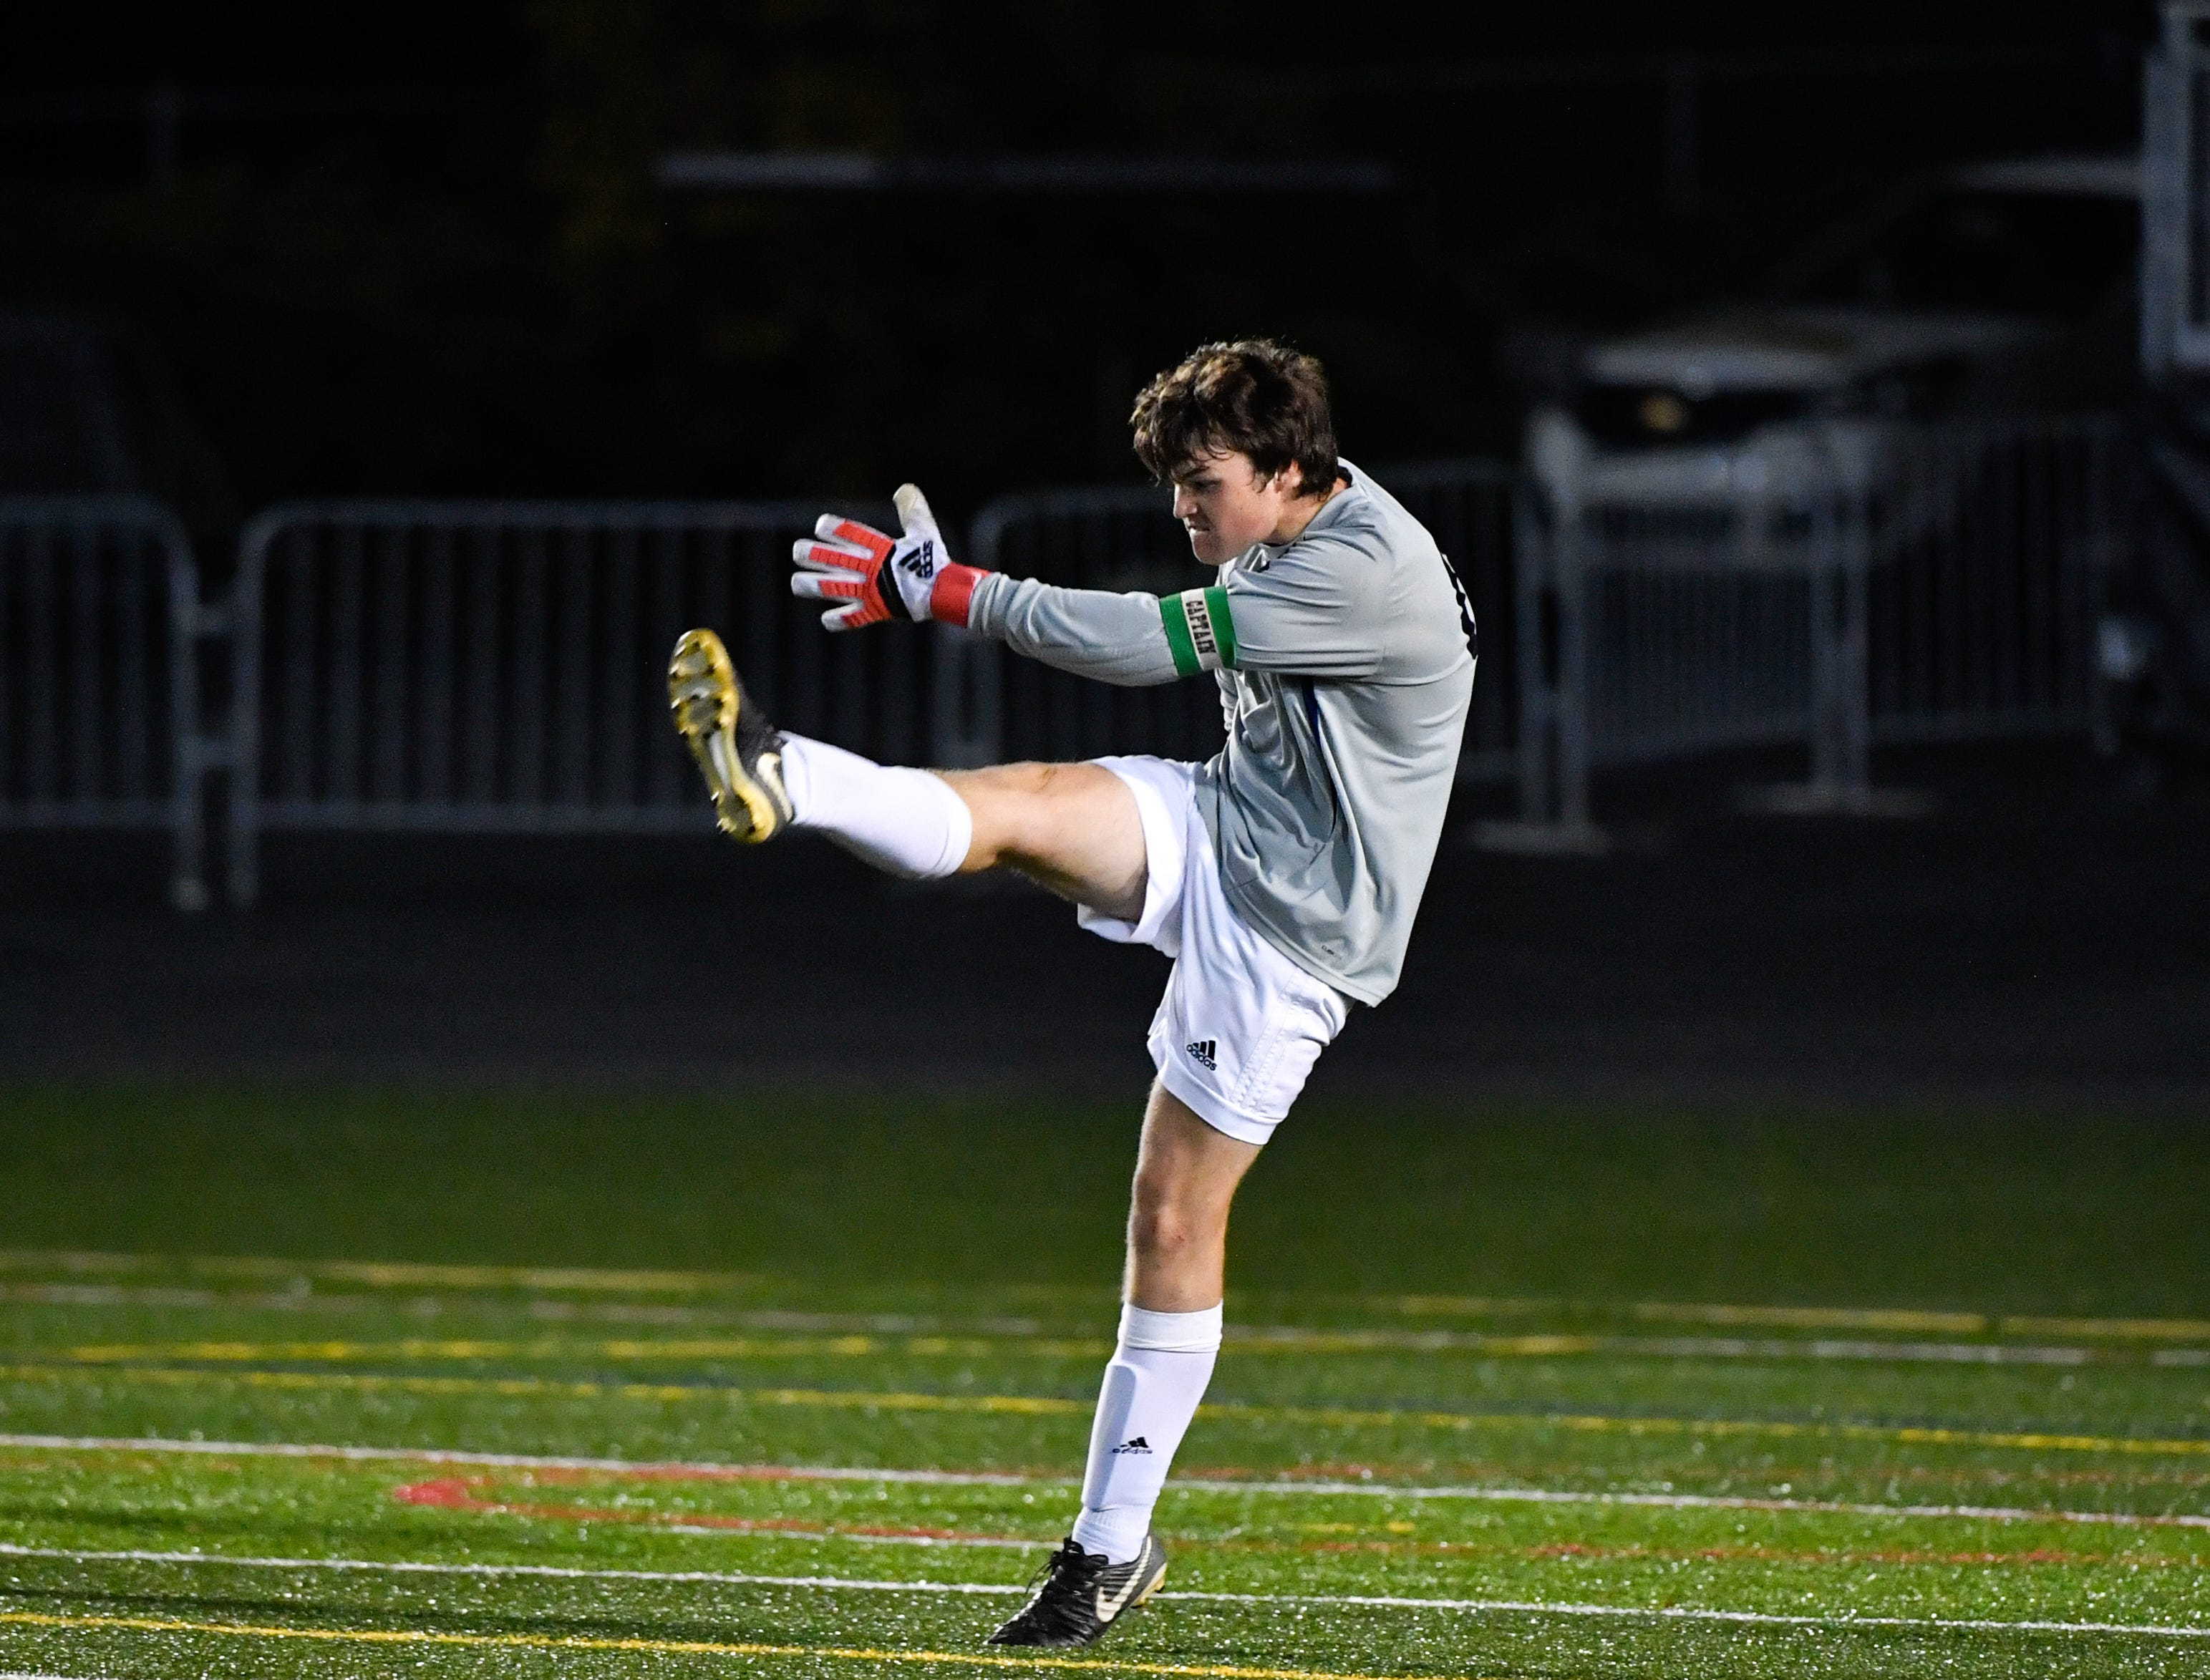 Ethan Higgins (00) of York Catholic punts the ball during the District 3 Class 1A boys' soccer finals between York Catholic and Camp Hill at Hersheypark Stadium, October 31, 2018. The Lions beat the Fighting Irish 2-0.